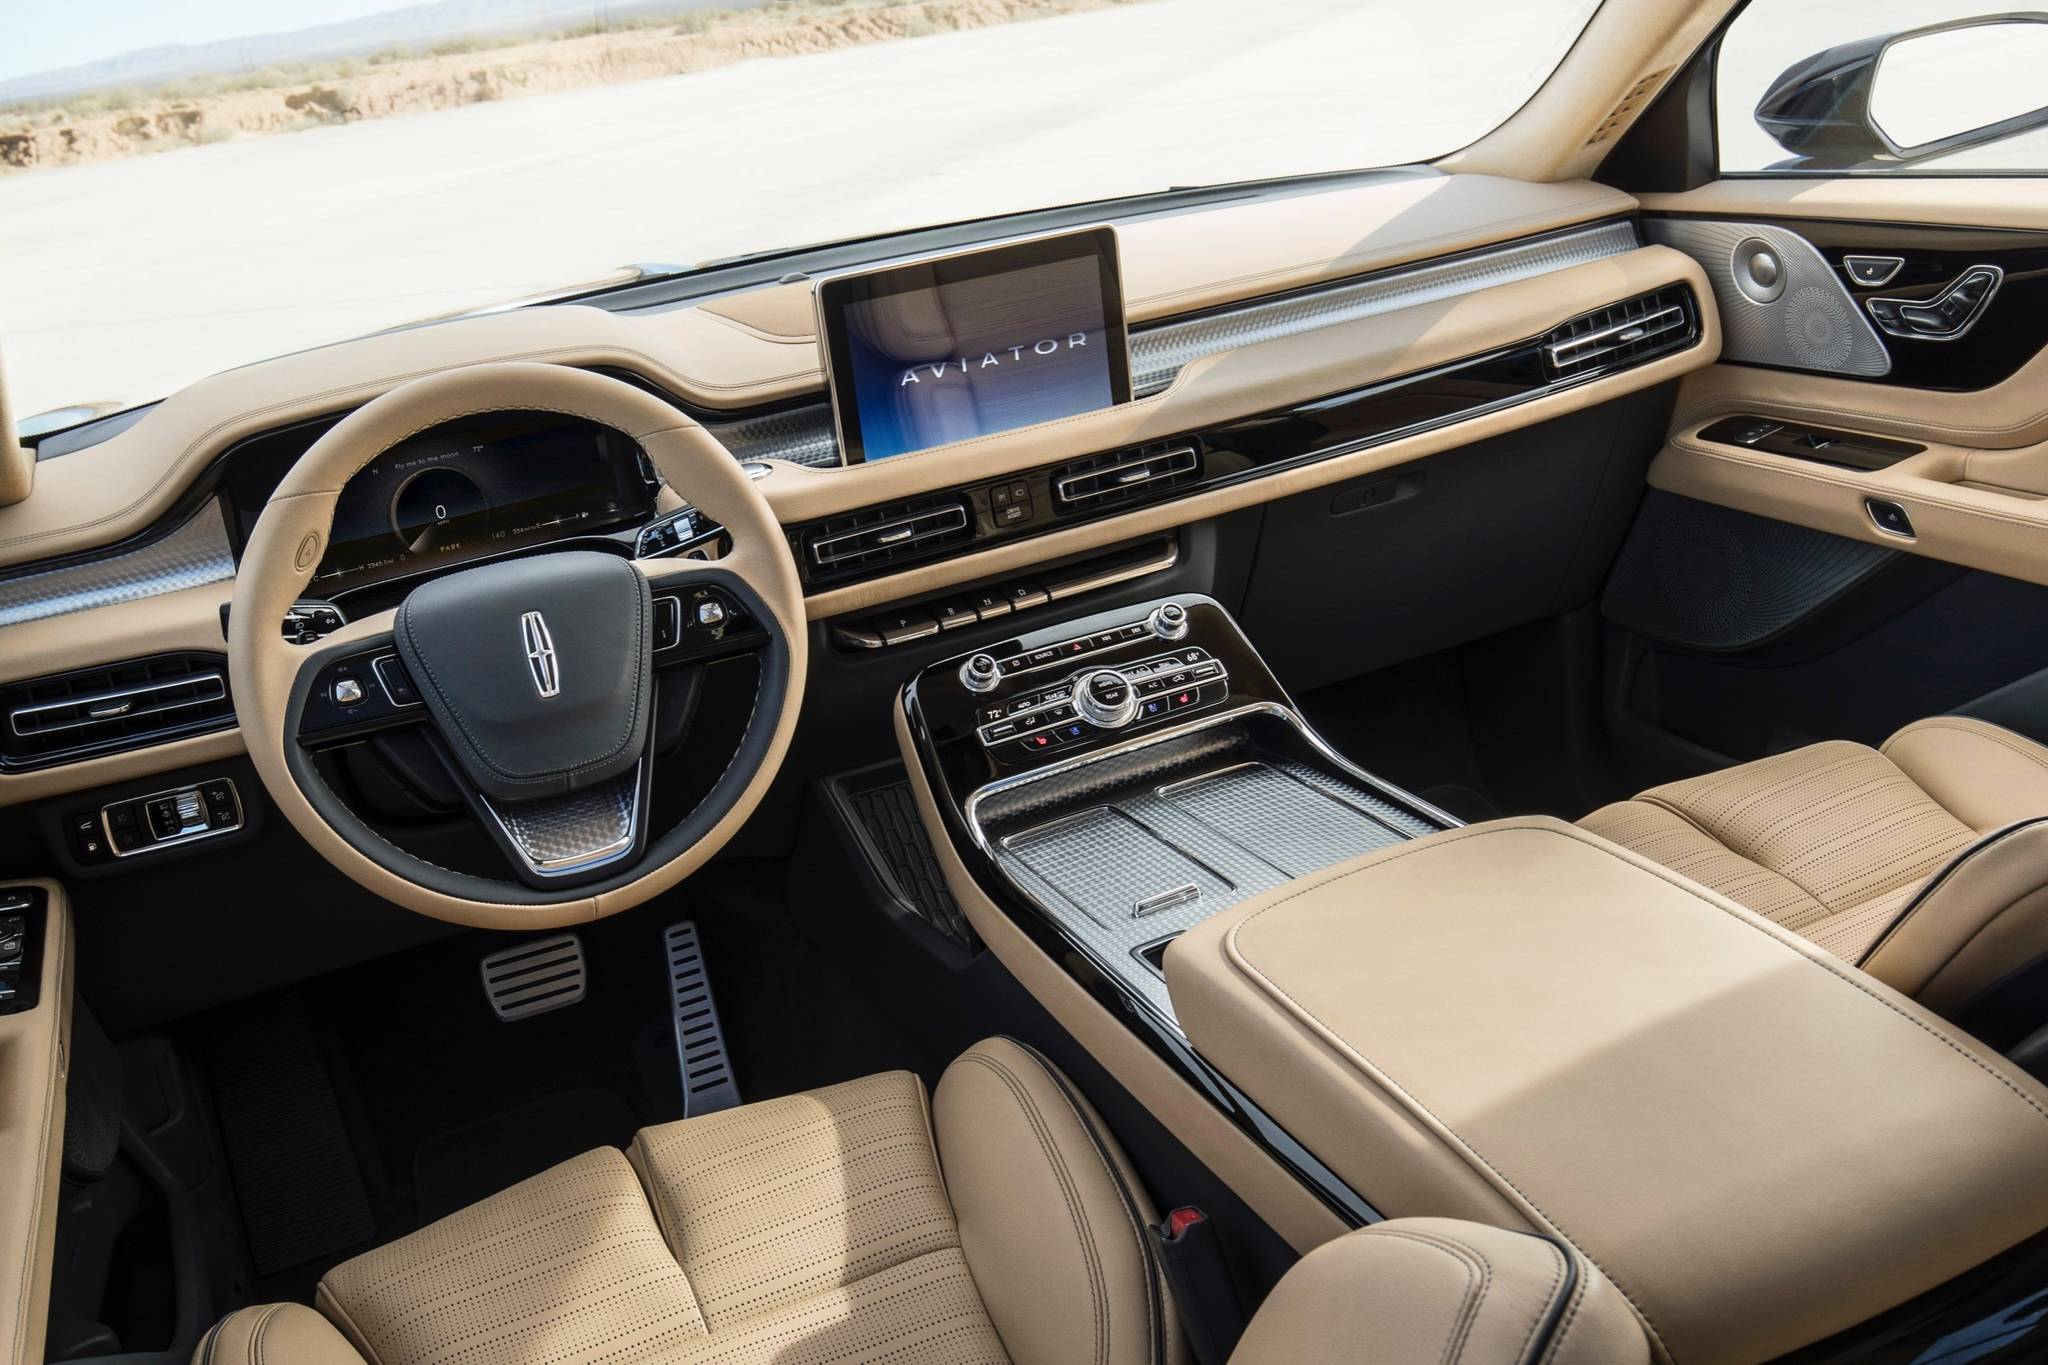 The screen popping out of the dash is the only distraction to an otherwise clean and elegant interior. Note the transmission is operated via a row of dash-mounted buttons. Photo: Lincoln